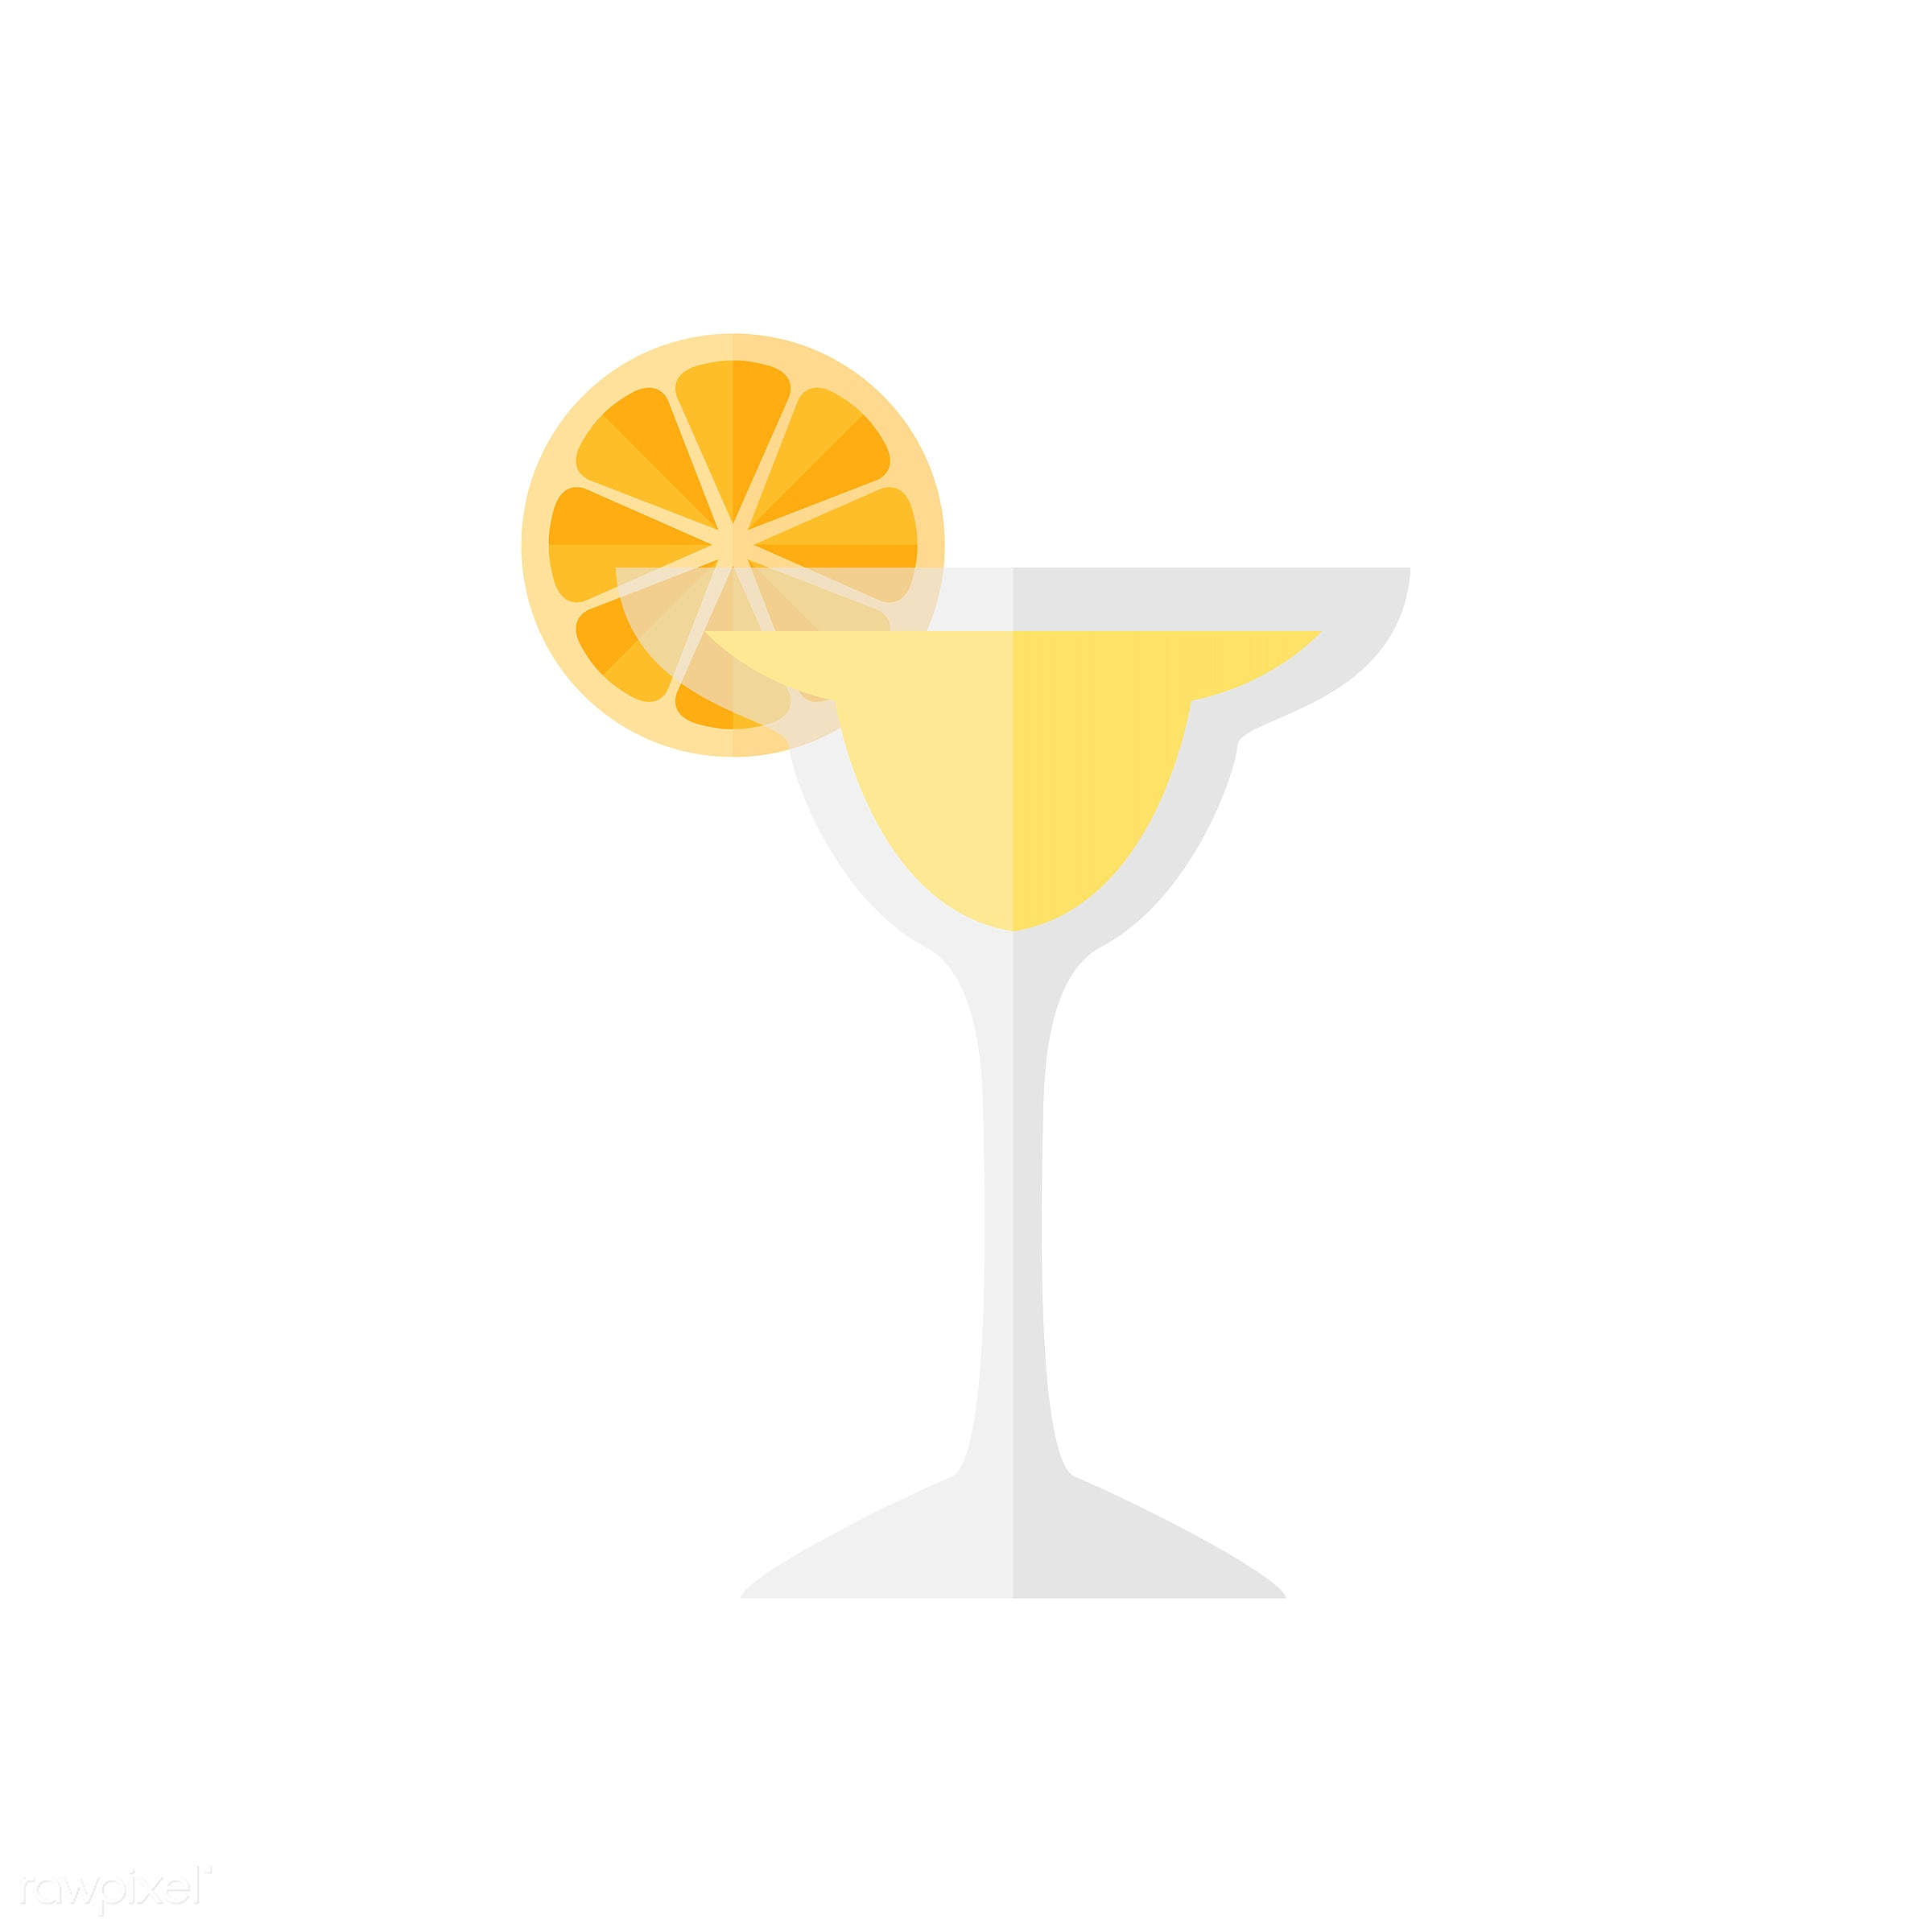 vector, graphic, illustration, icon, symbol, colorful, cute, drink, beverage, water, cocktail, mocktail, alcohol, party,...